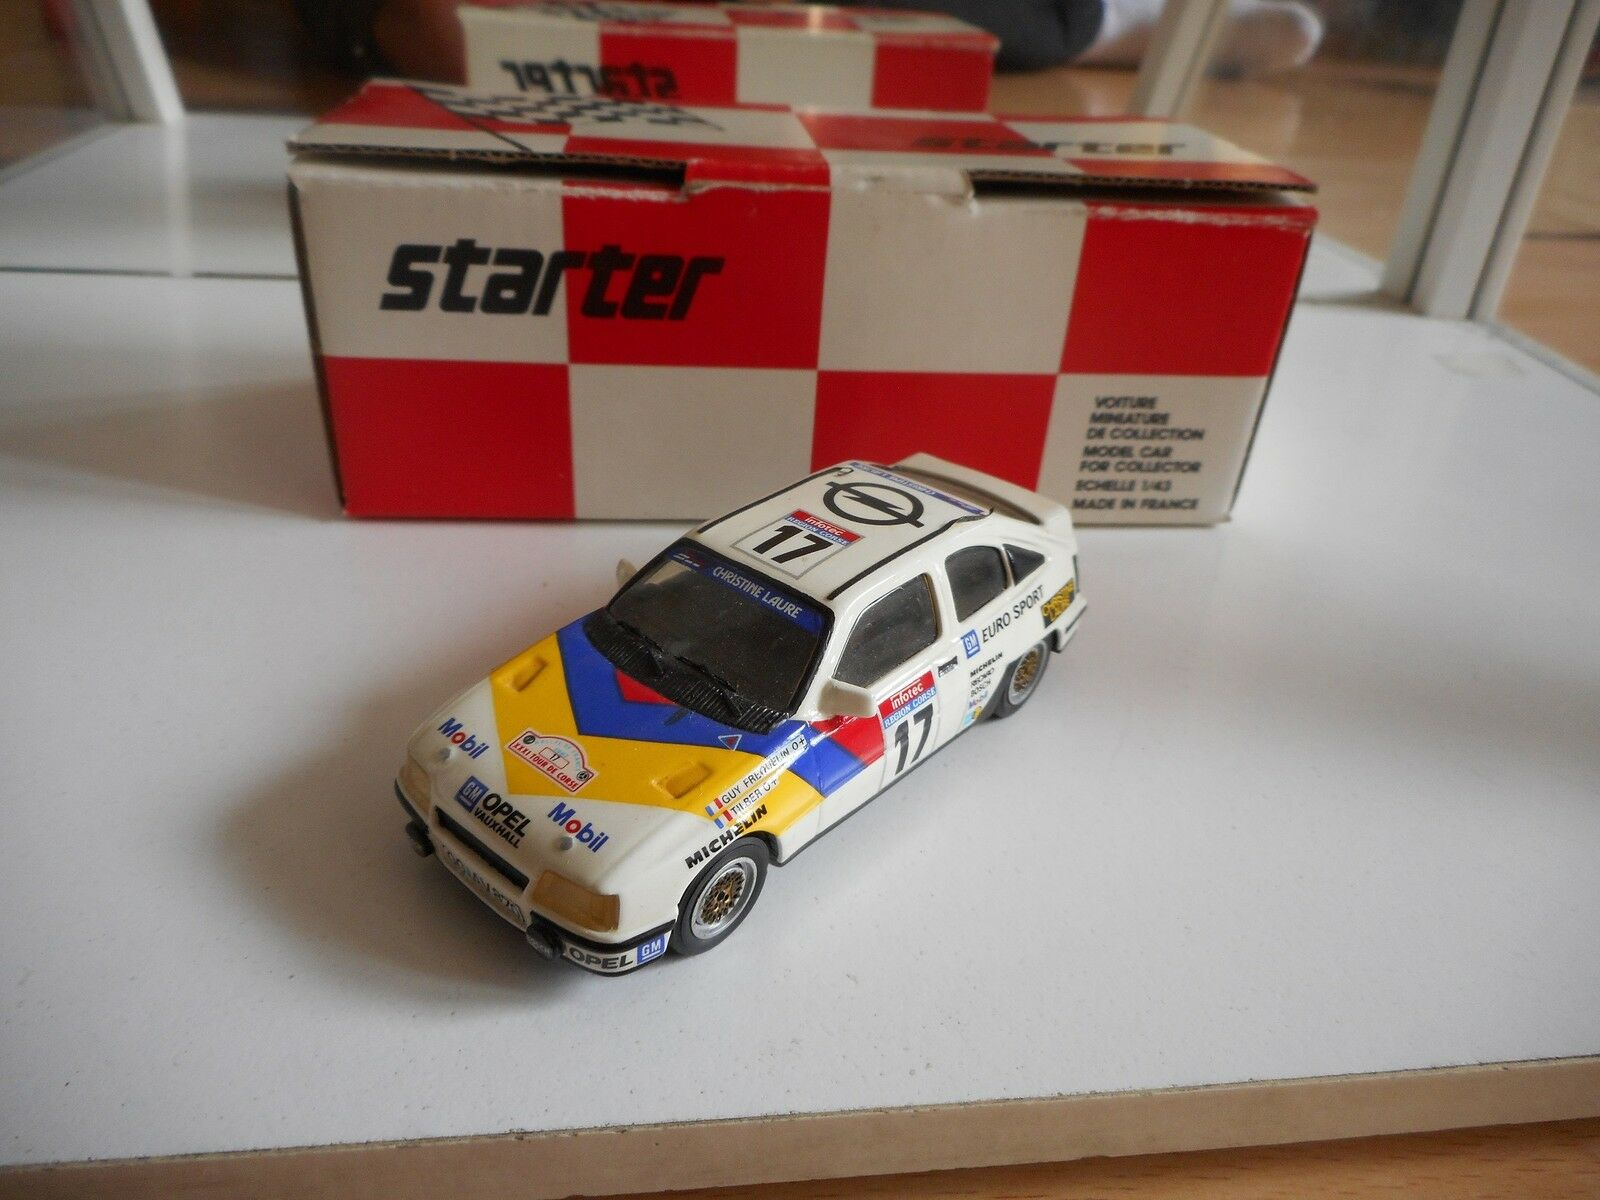 Starter Opel Kadett E Gr. A Tour de Corse 1987 in blanc on 1 43 in Box